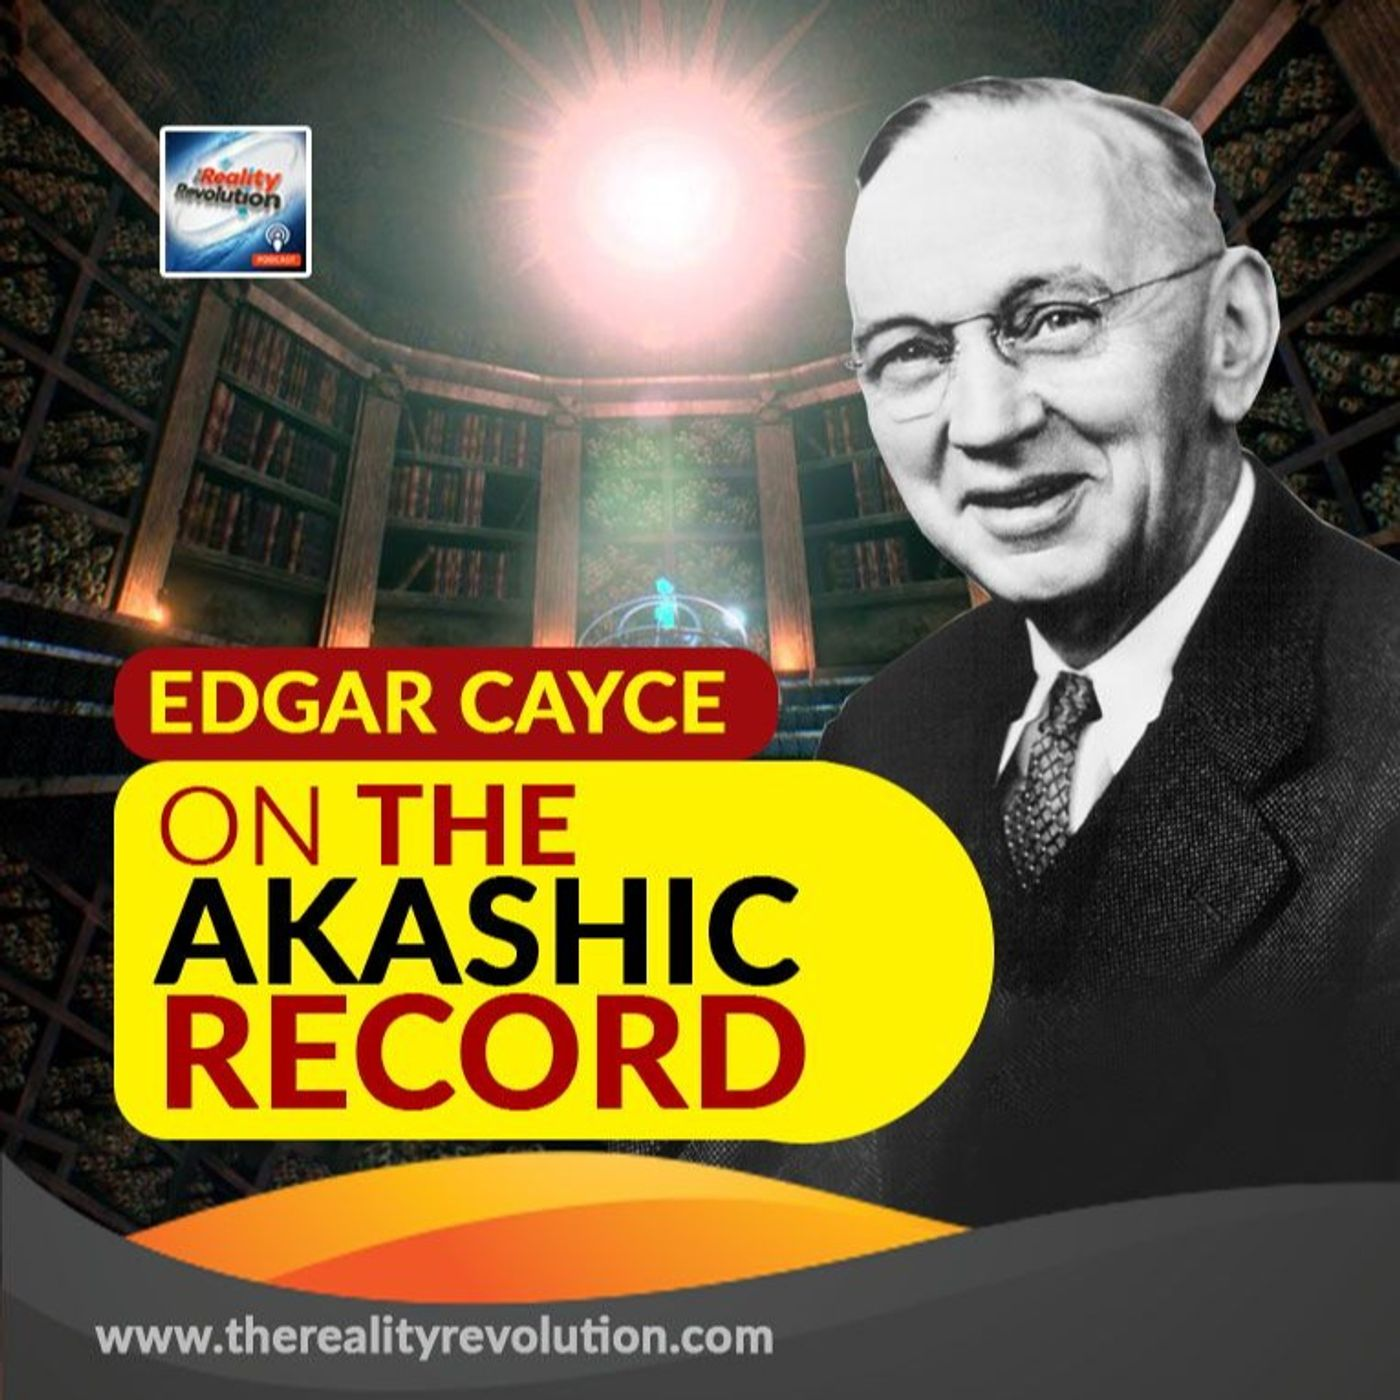 Edgar Cayce On The Akashic Record